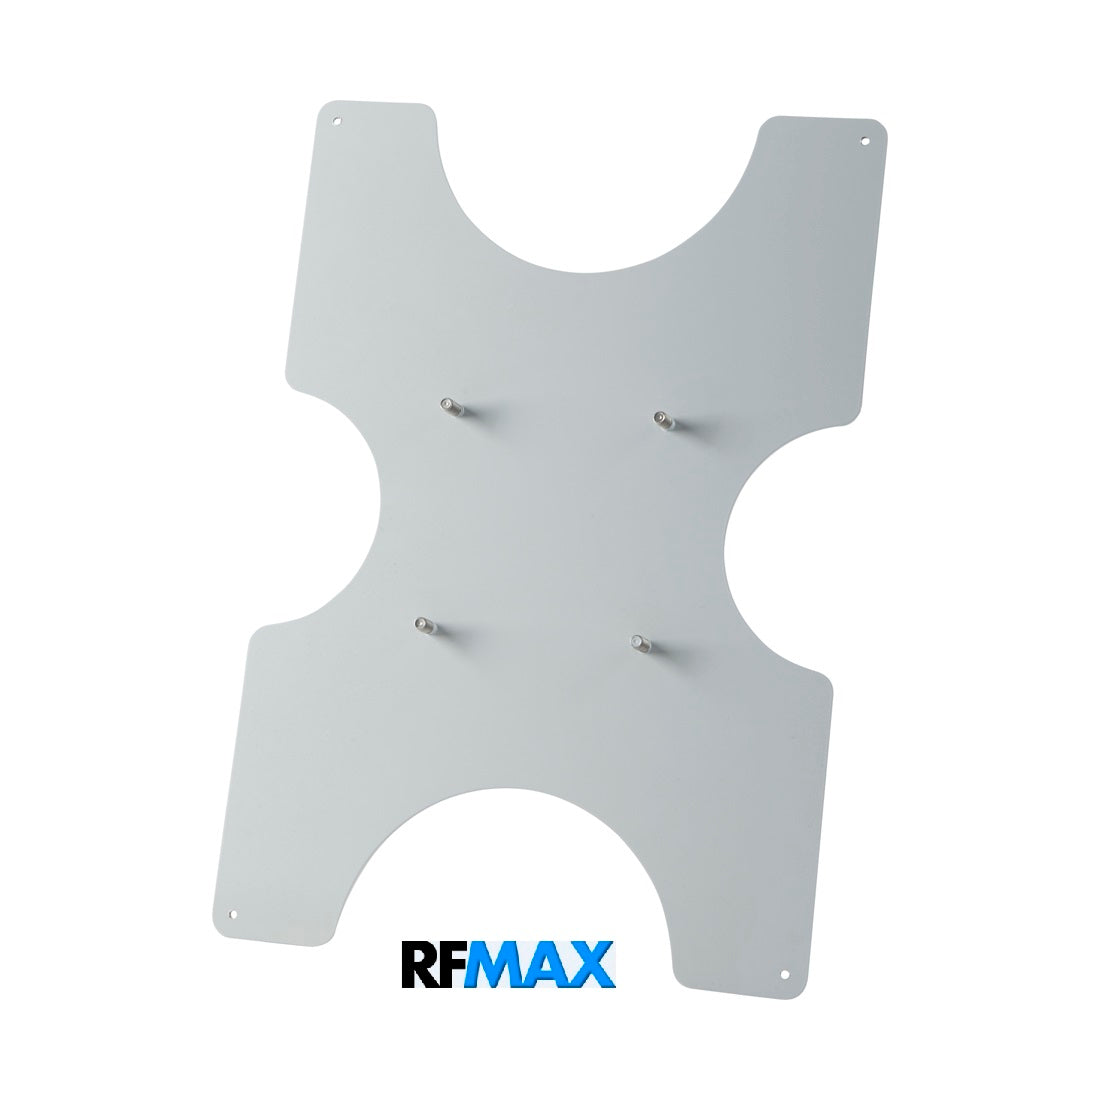 RFMAX-71632 SlimLine RFID Antenna Mounting Plate for Zebra AN620 & Times-7 A6032